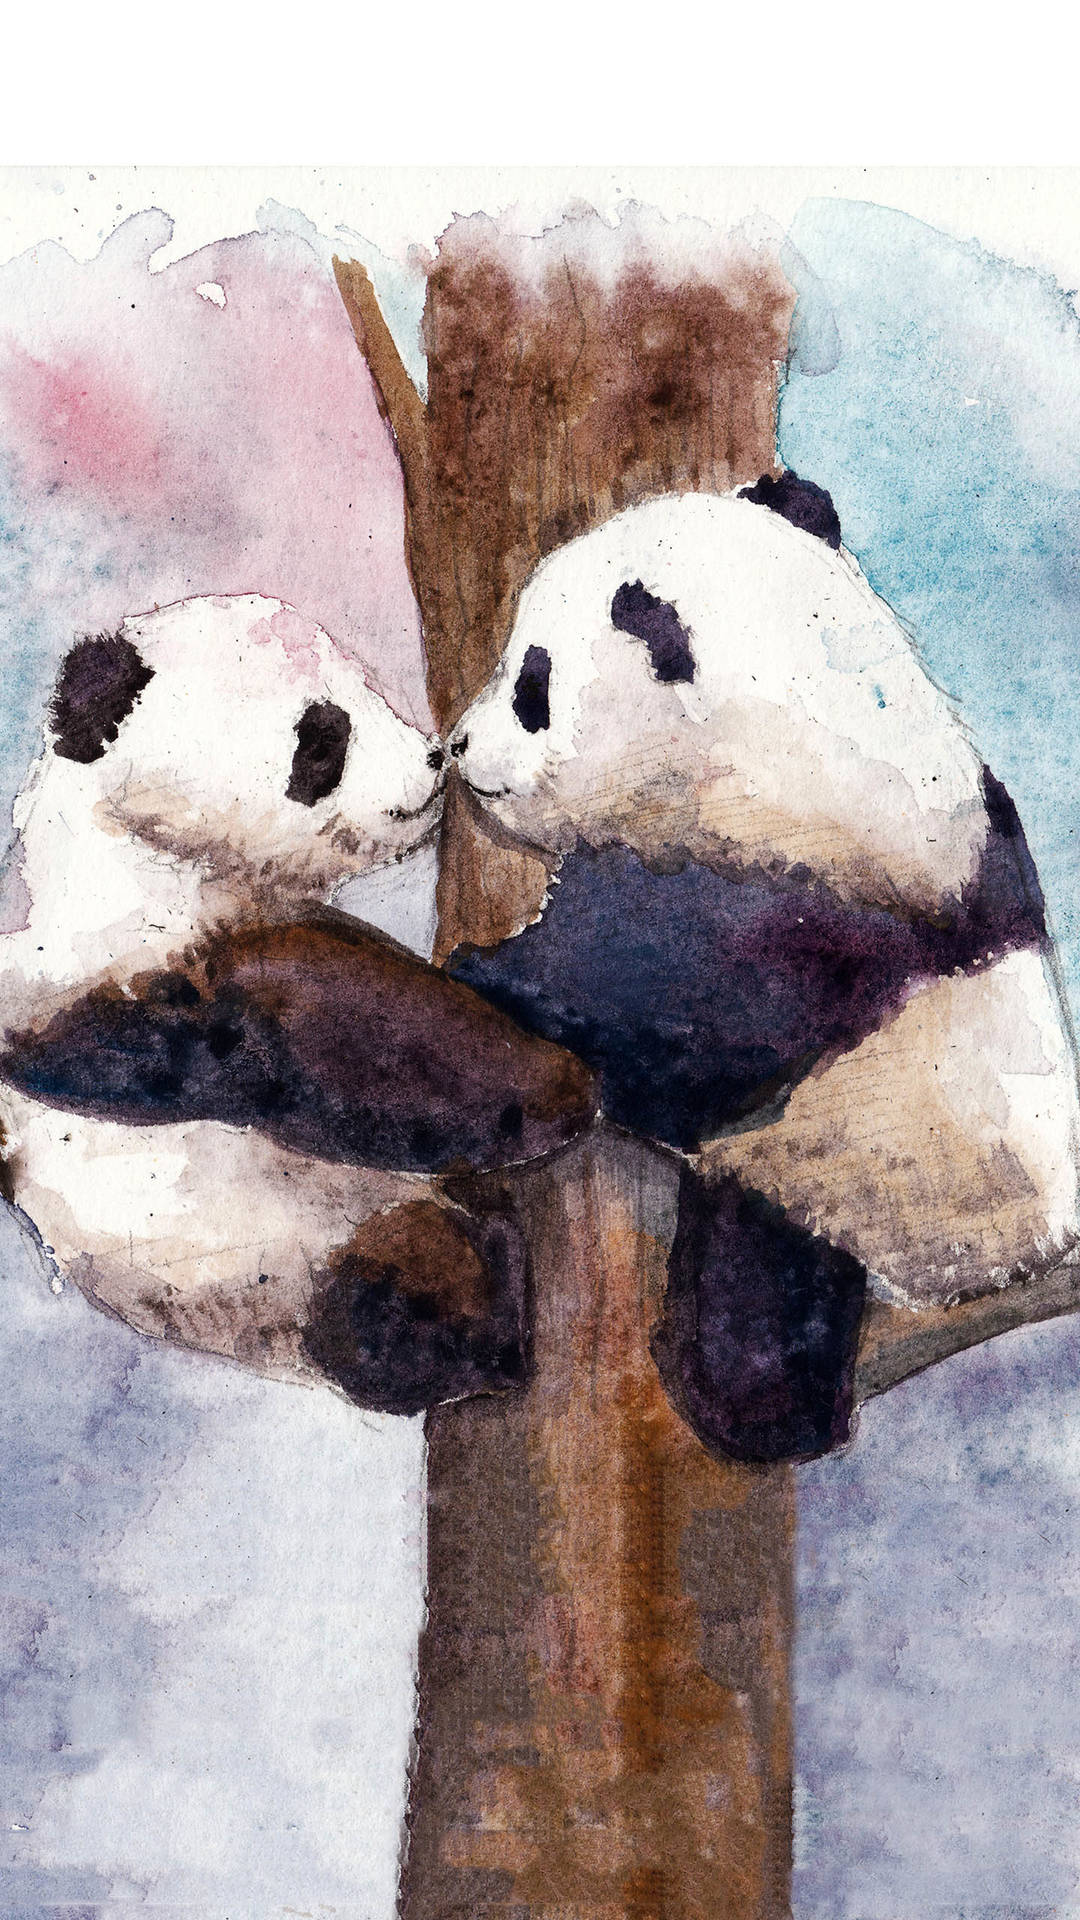 Two Giant Pandas In Climbing Trees